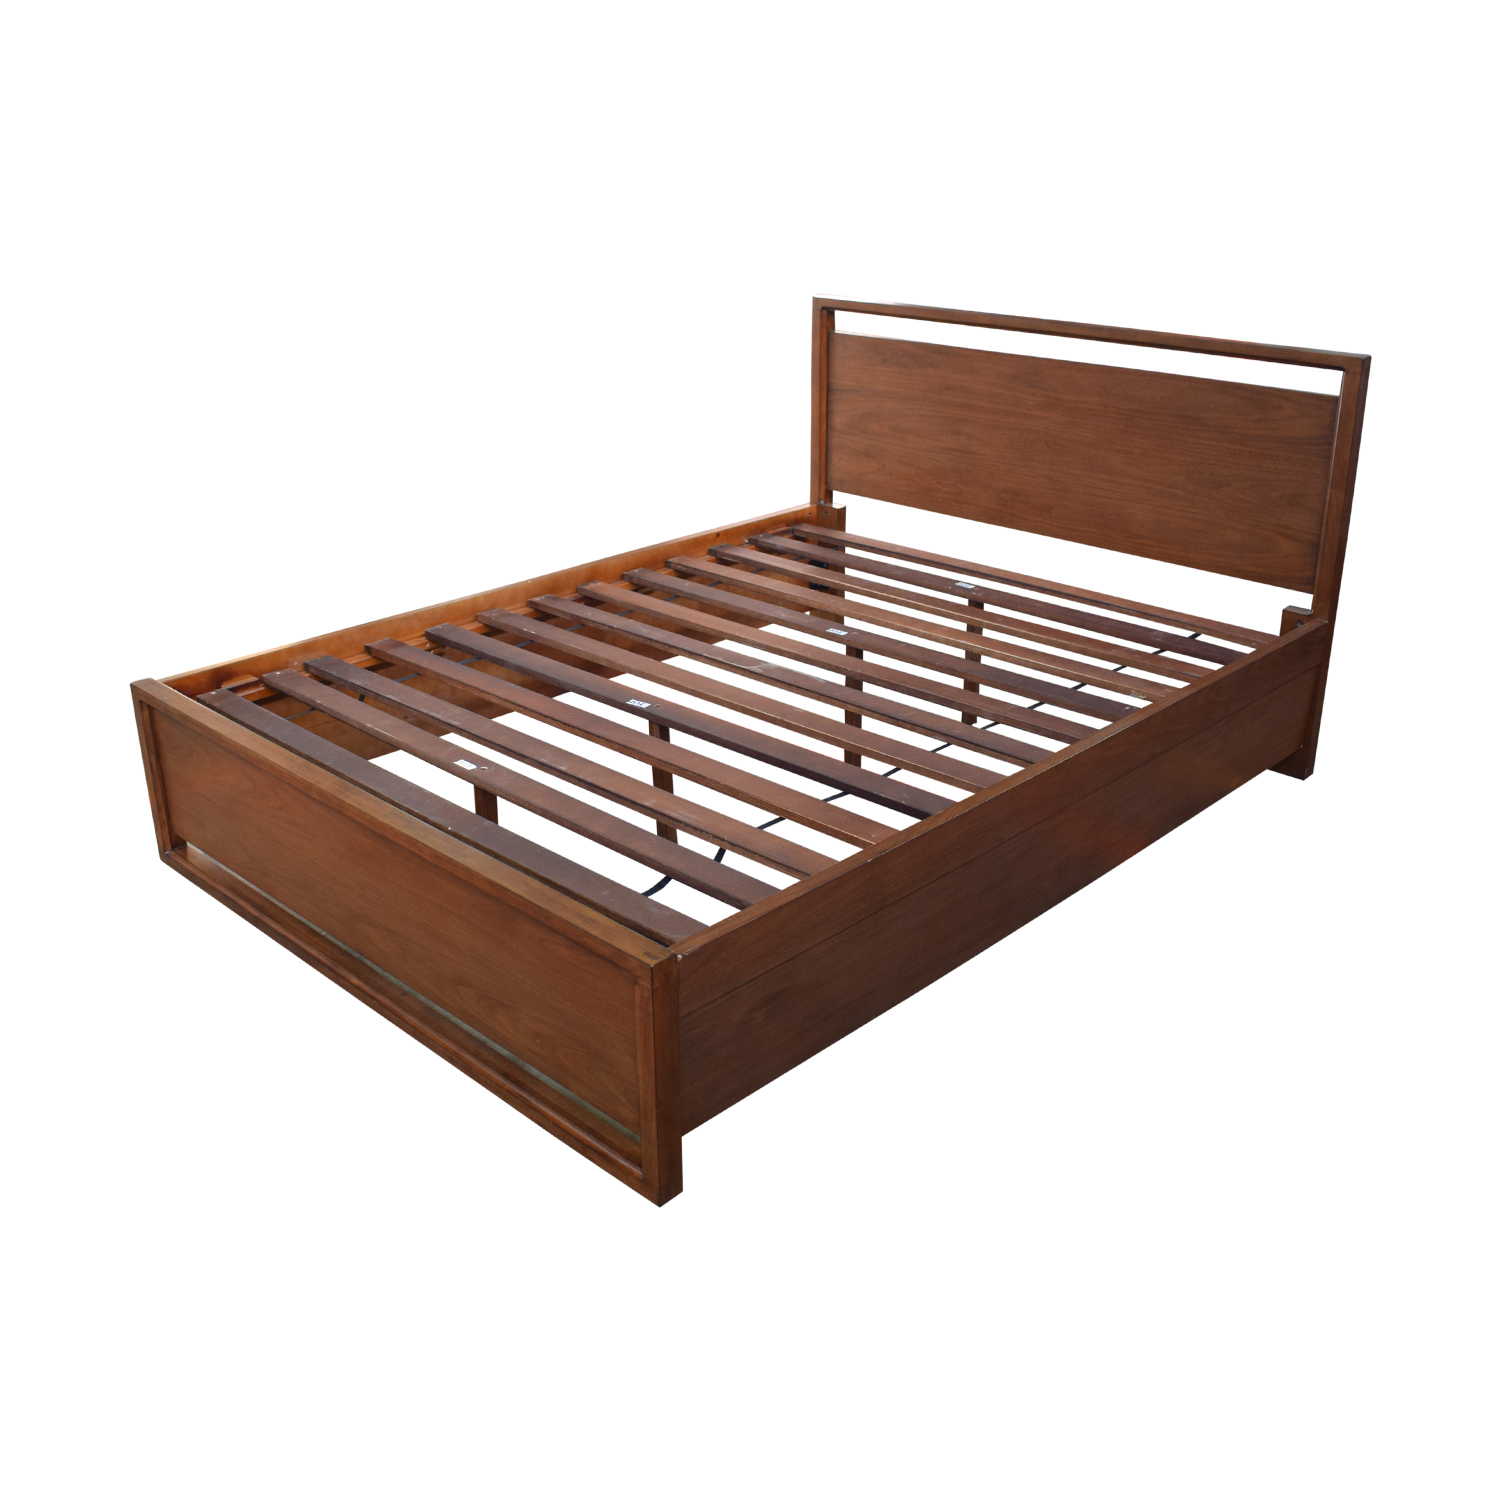 Raymour & Flanigan Raymour & Flanigan Aversa Queen Bed Frame coupon